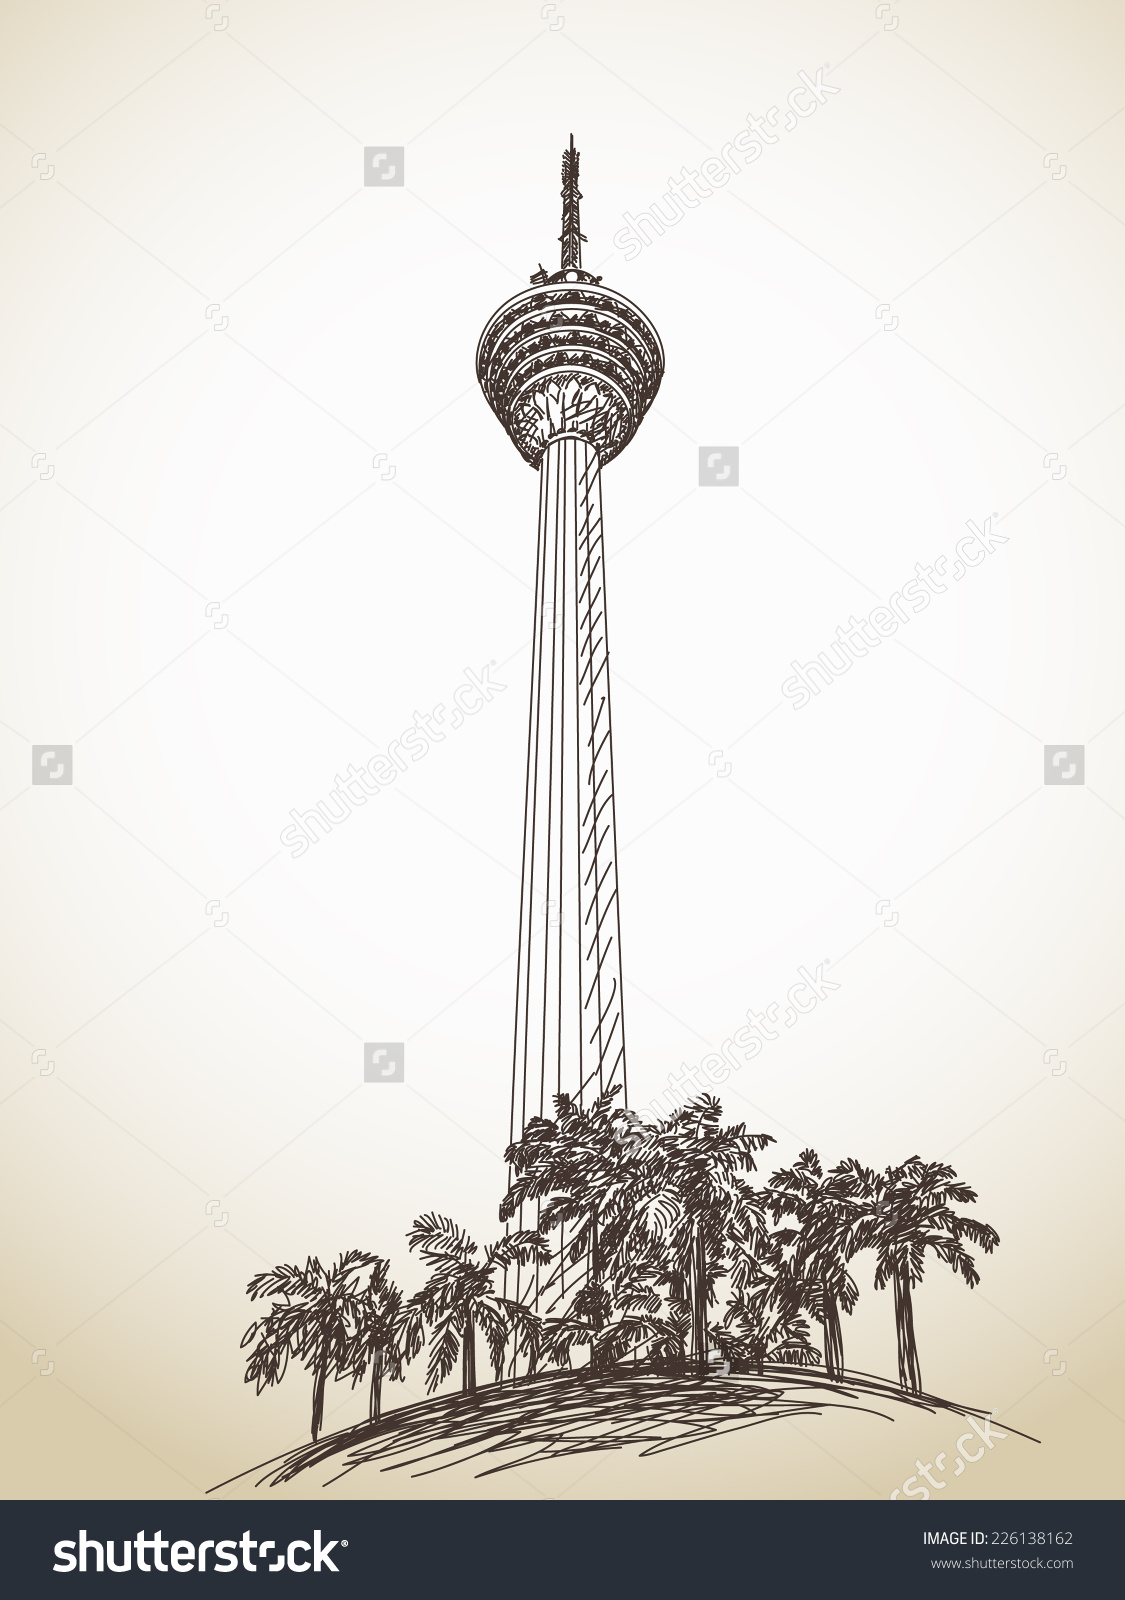 Kl tower clipart.